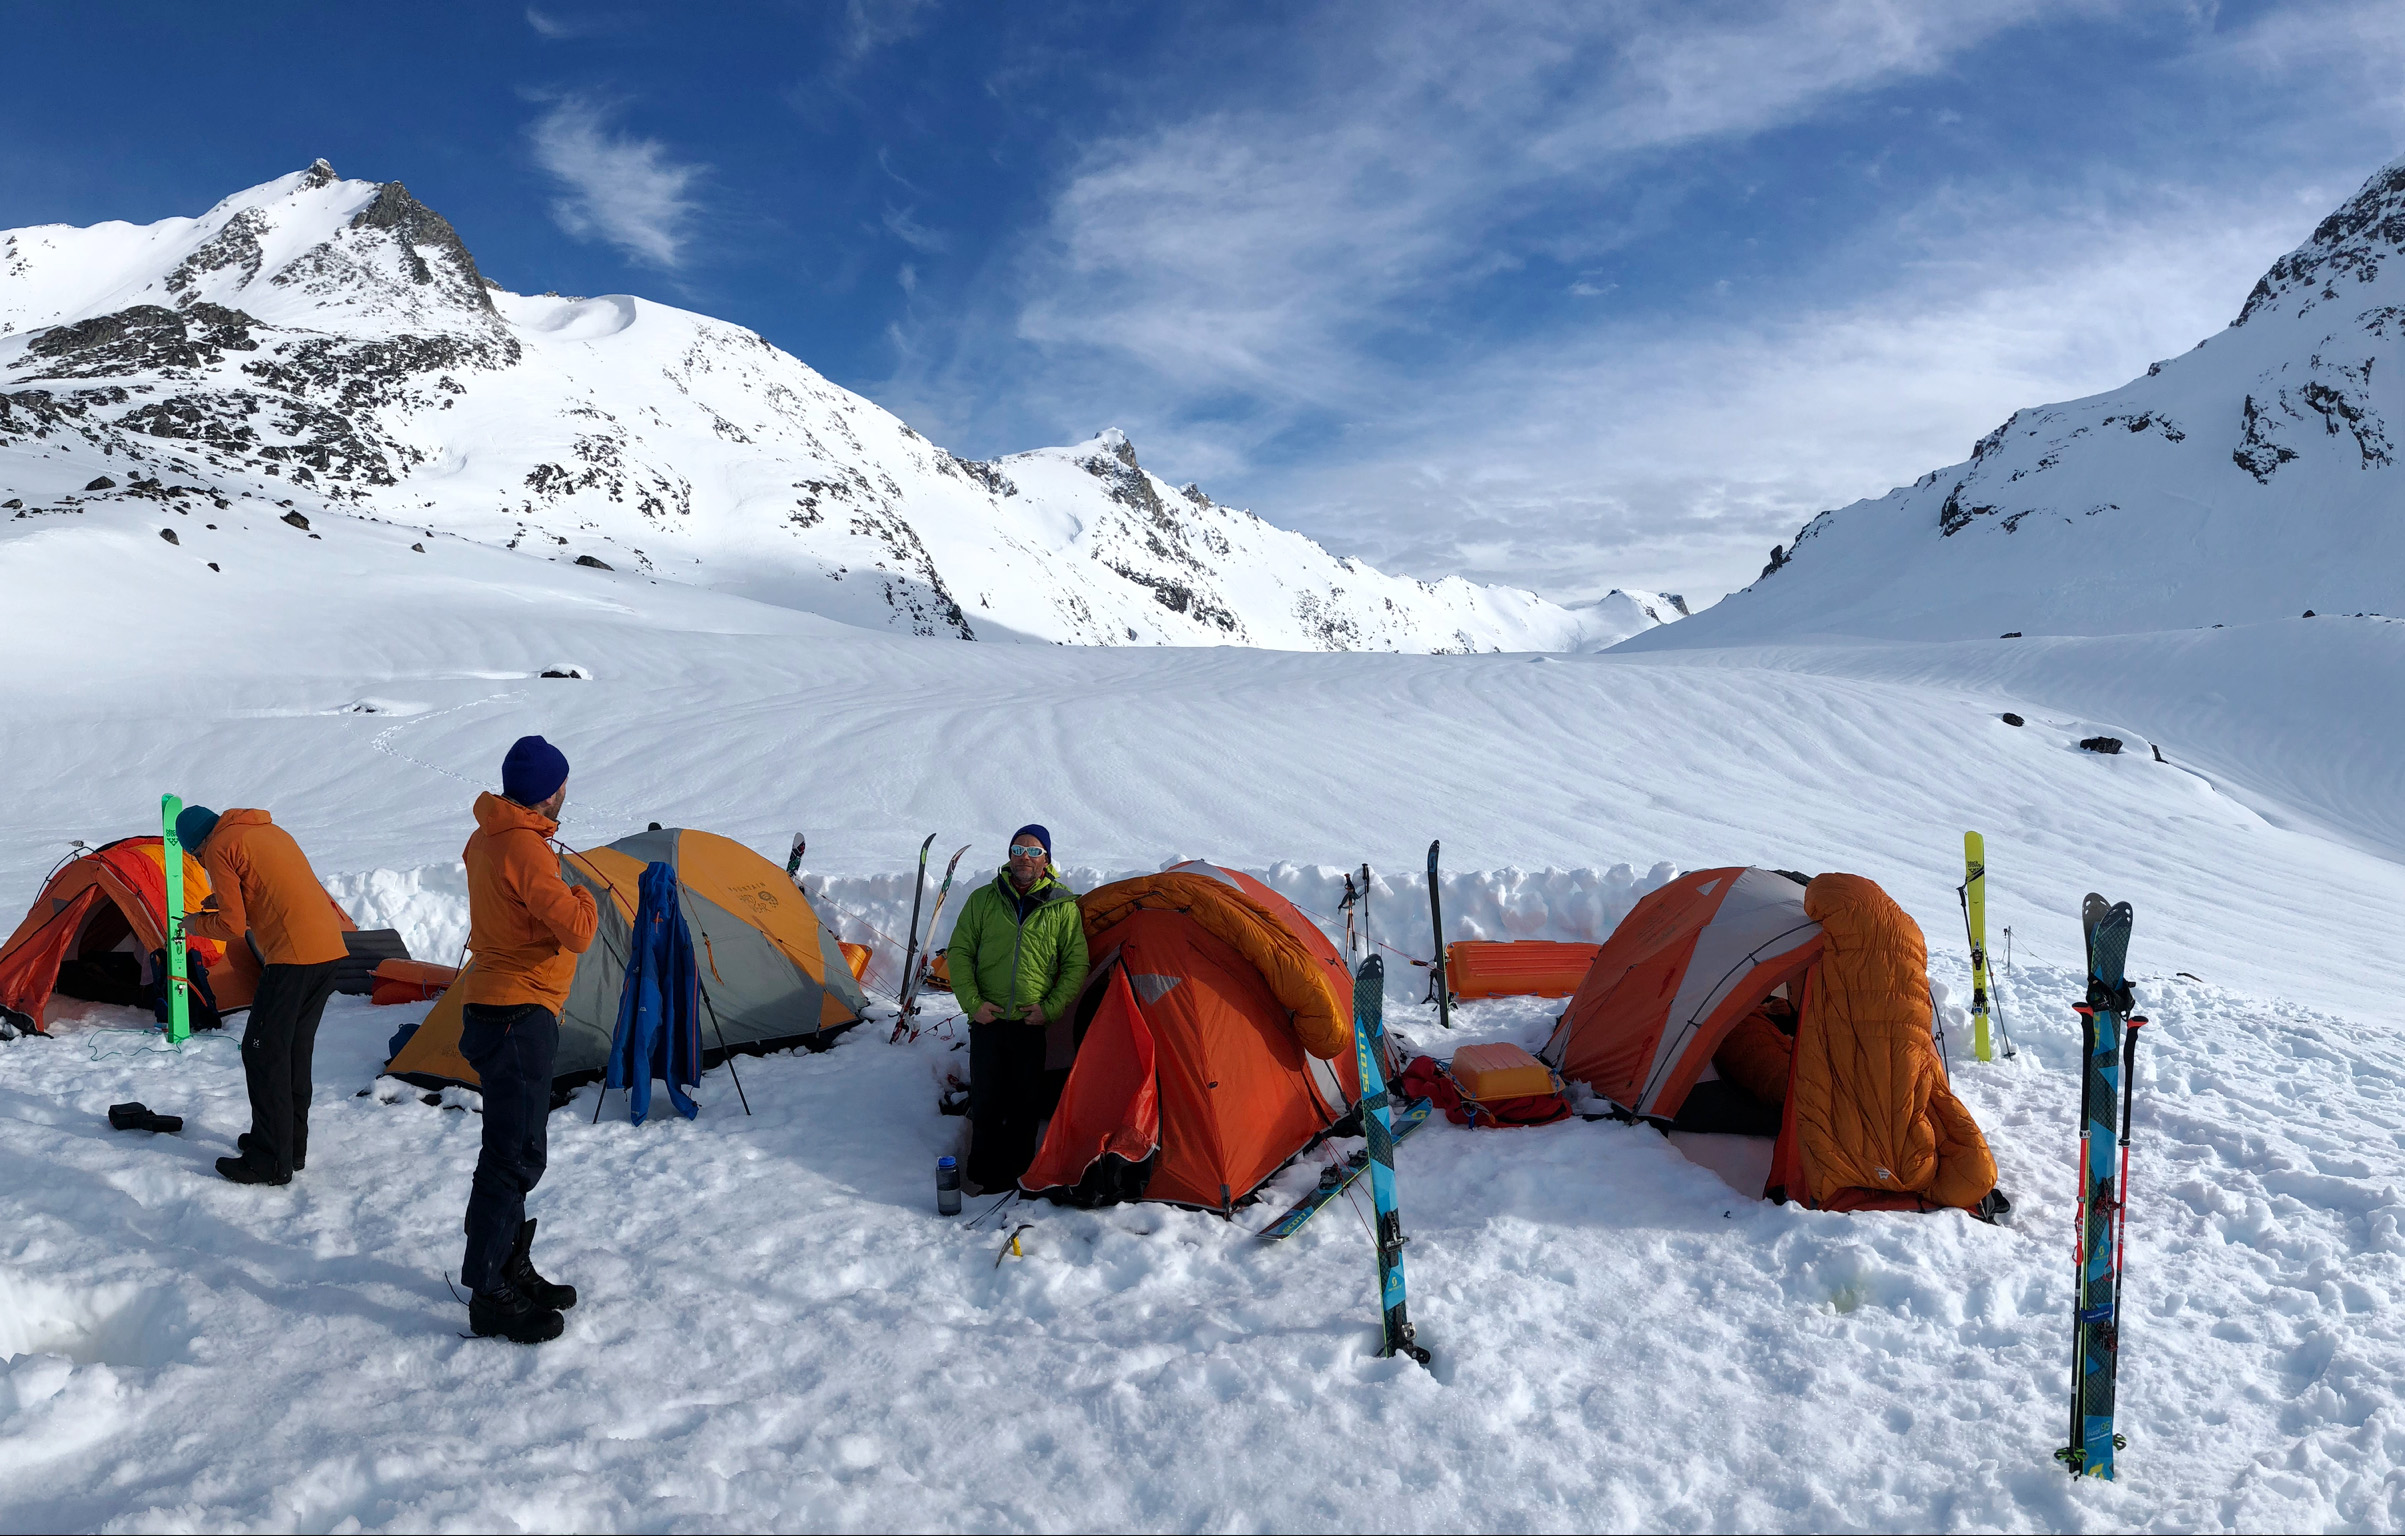 Base Camp: the team sets up camp on the snow. ©Andrew Denton